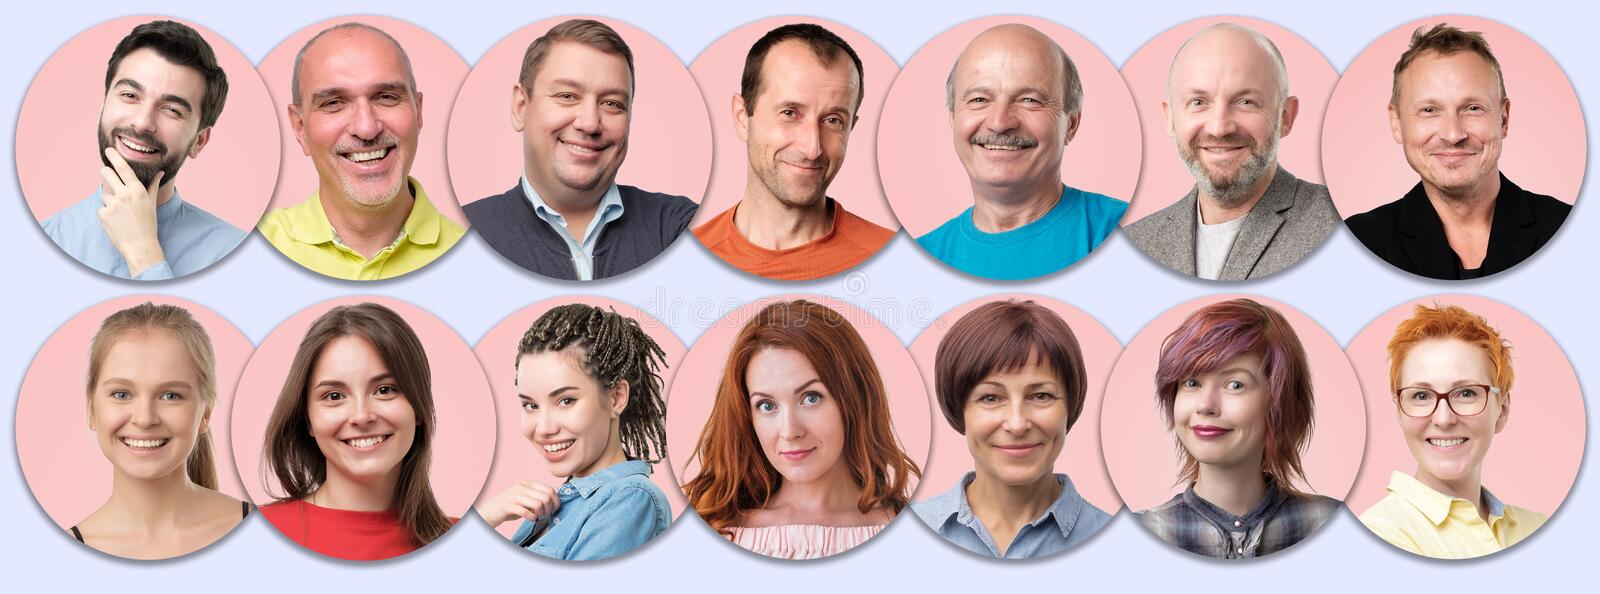 Collection of circle avatar of people. Young and senior men and women faces on pink color. royalty free stock photos